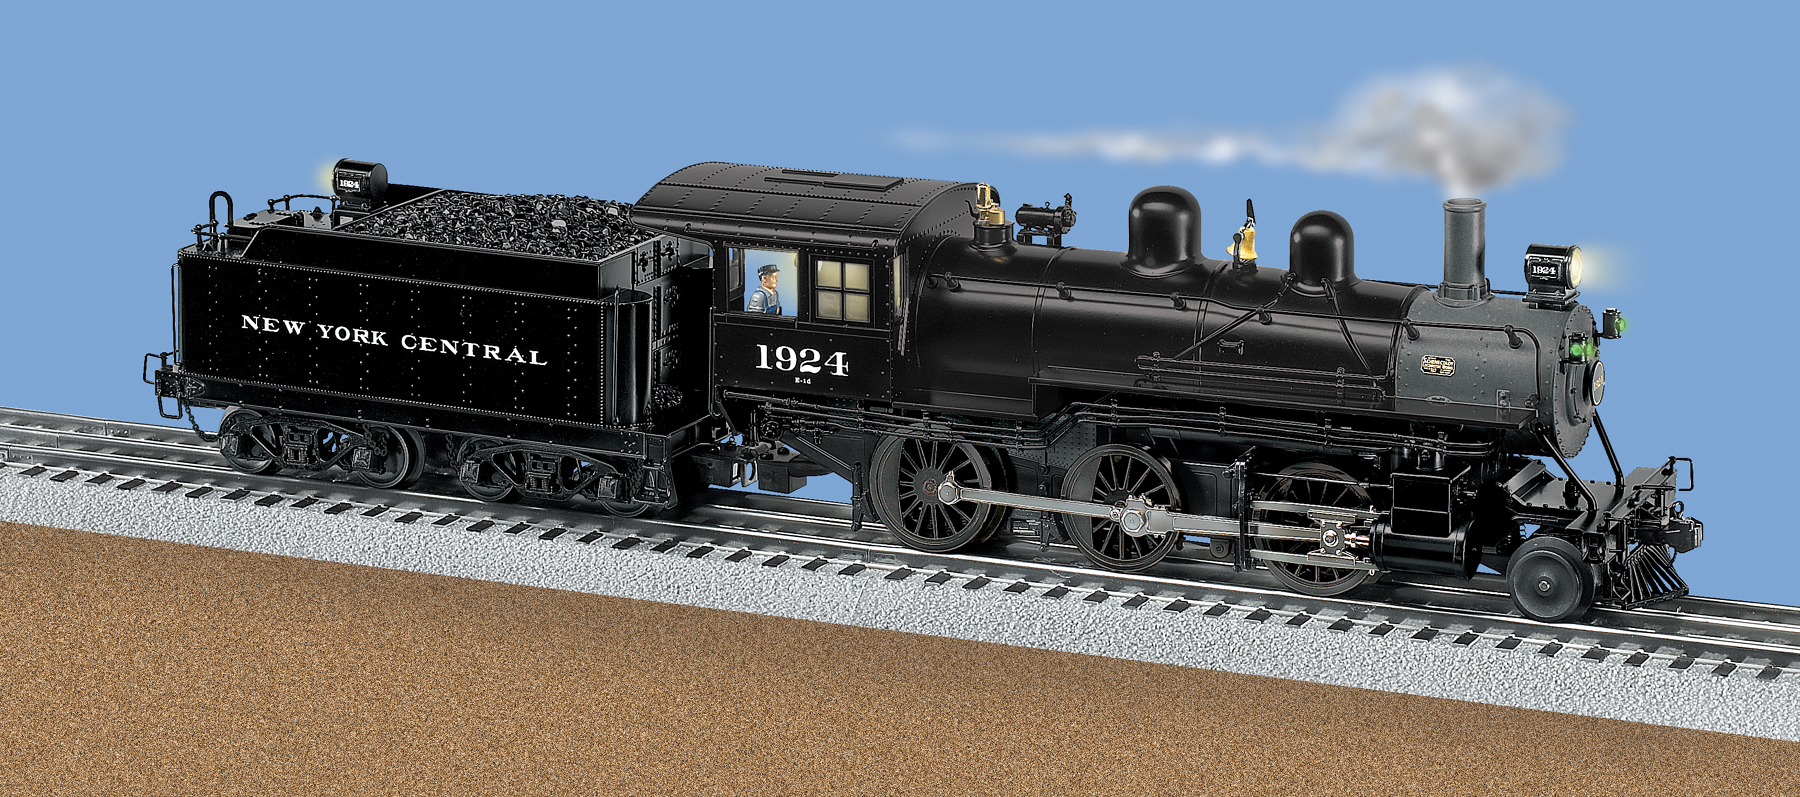 medium resolution of s3 amazonaws com lionel initial assets products pr lionel fast track layout designs 1962 lionel train motor wiring diagram